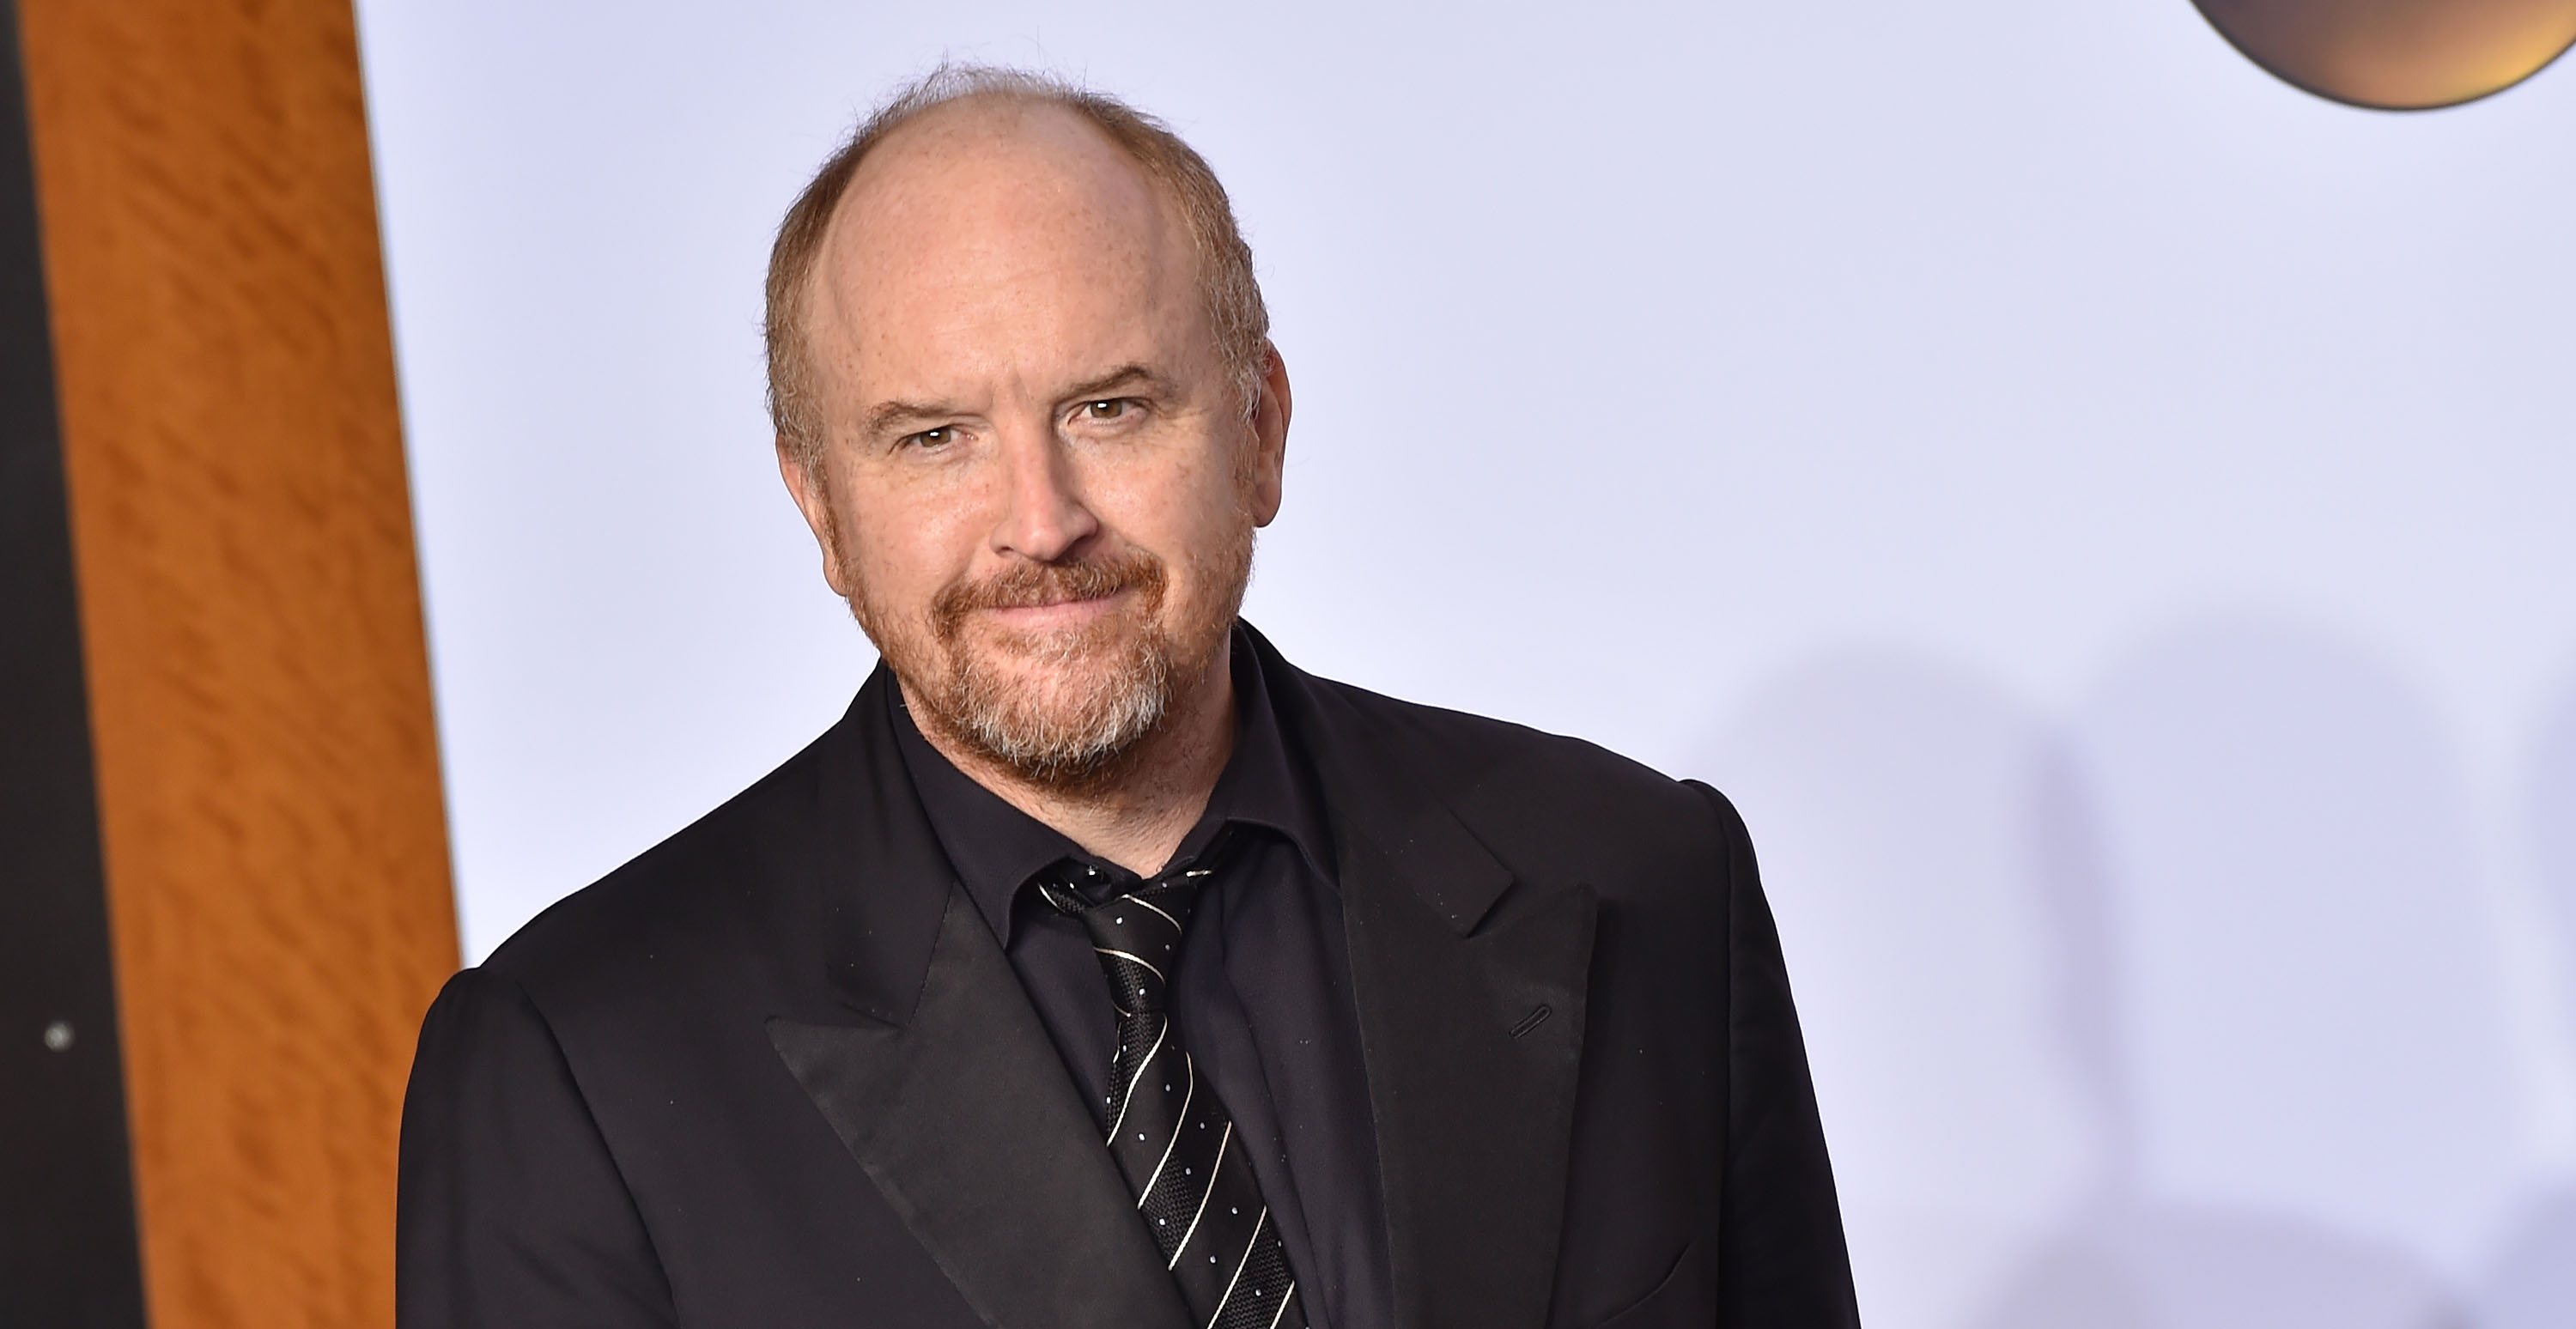 Comedian Louis C.K. poses in the press room during the 88th Annual Academy Awards at Loews Hollywood Hotel on Feb. 28, 2016 in Hollywood, Calif.